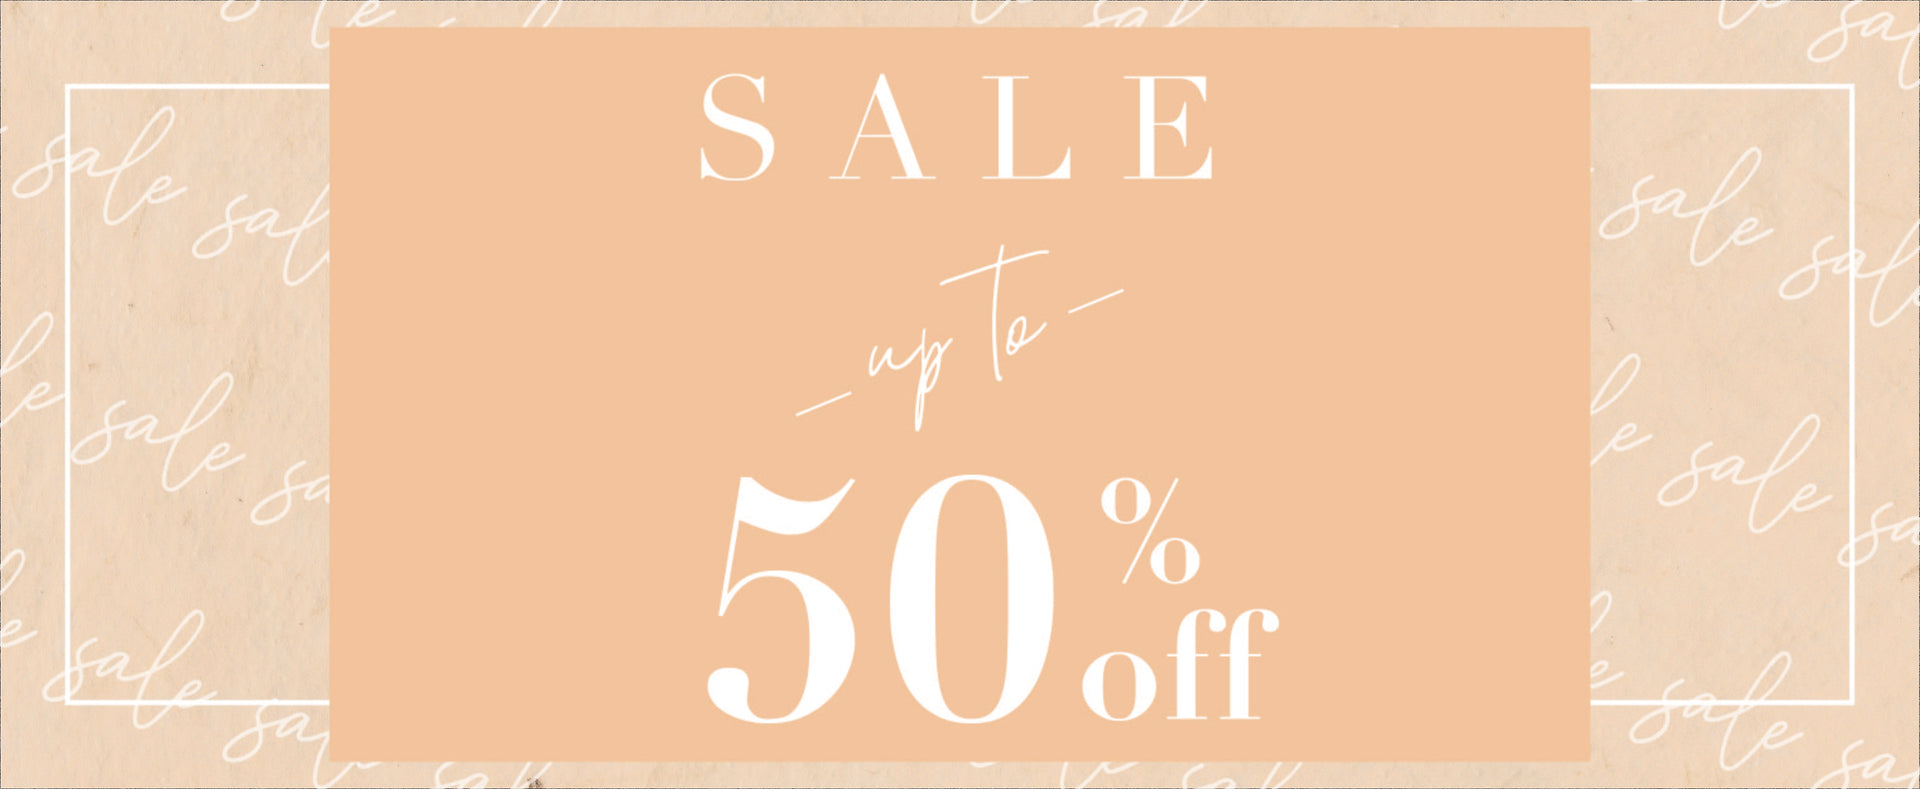 Sale Up To 50% Off On Lilyful's clothing